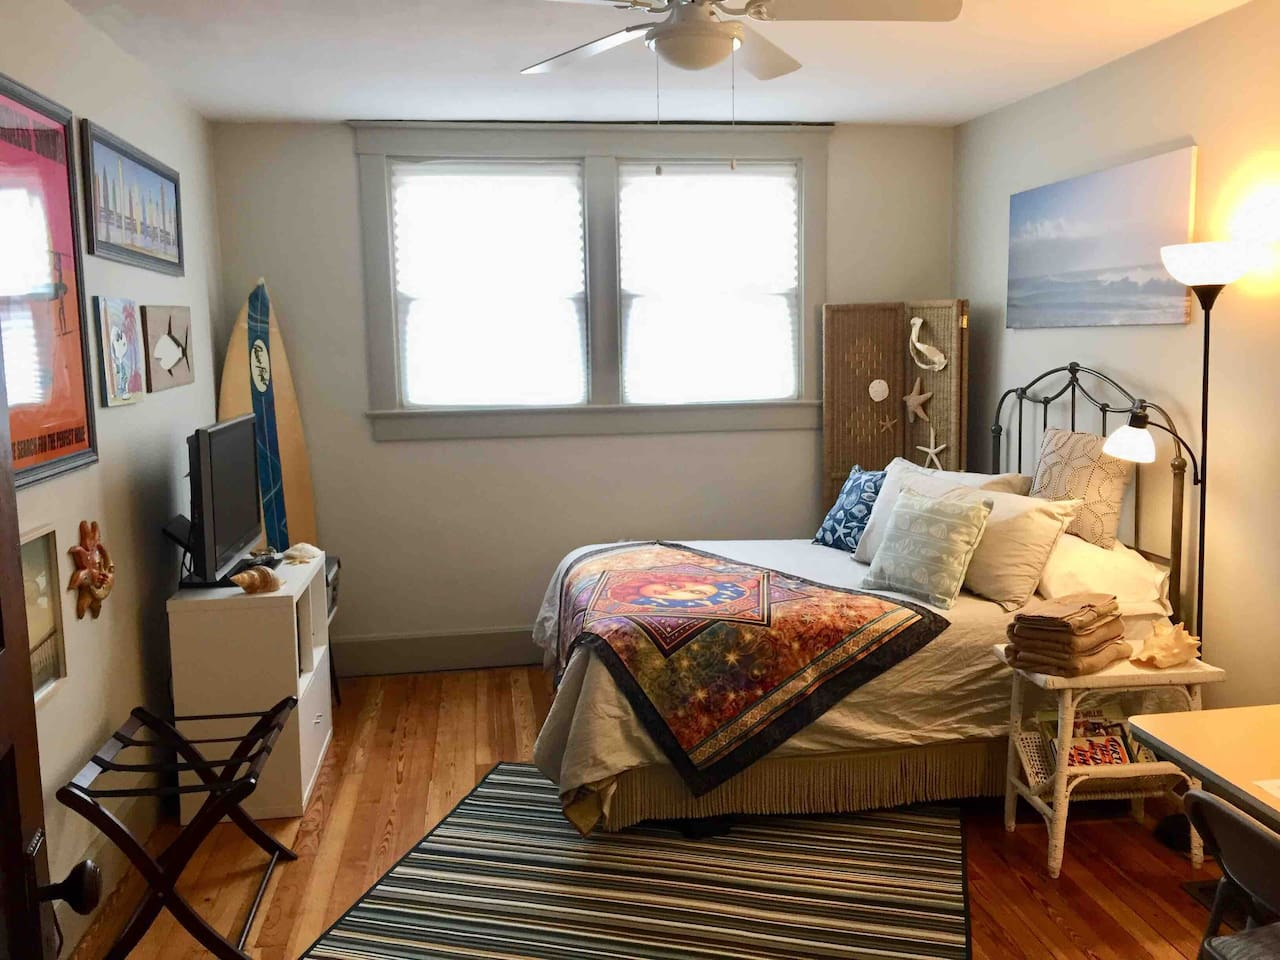 The 10x15 Surf Room is your hideout in Indianapolis. The comfy full-size bed is surrounded with some of my surfing and beach memorabilia. There's a fridge, microwave, TV, VHS player, VHS movies, record player, records, 2 chairs, and a desk.